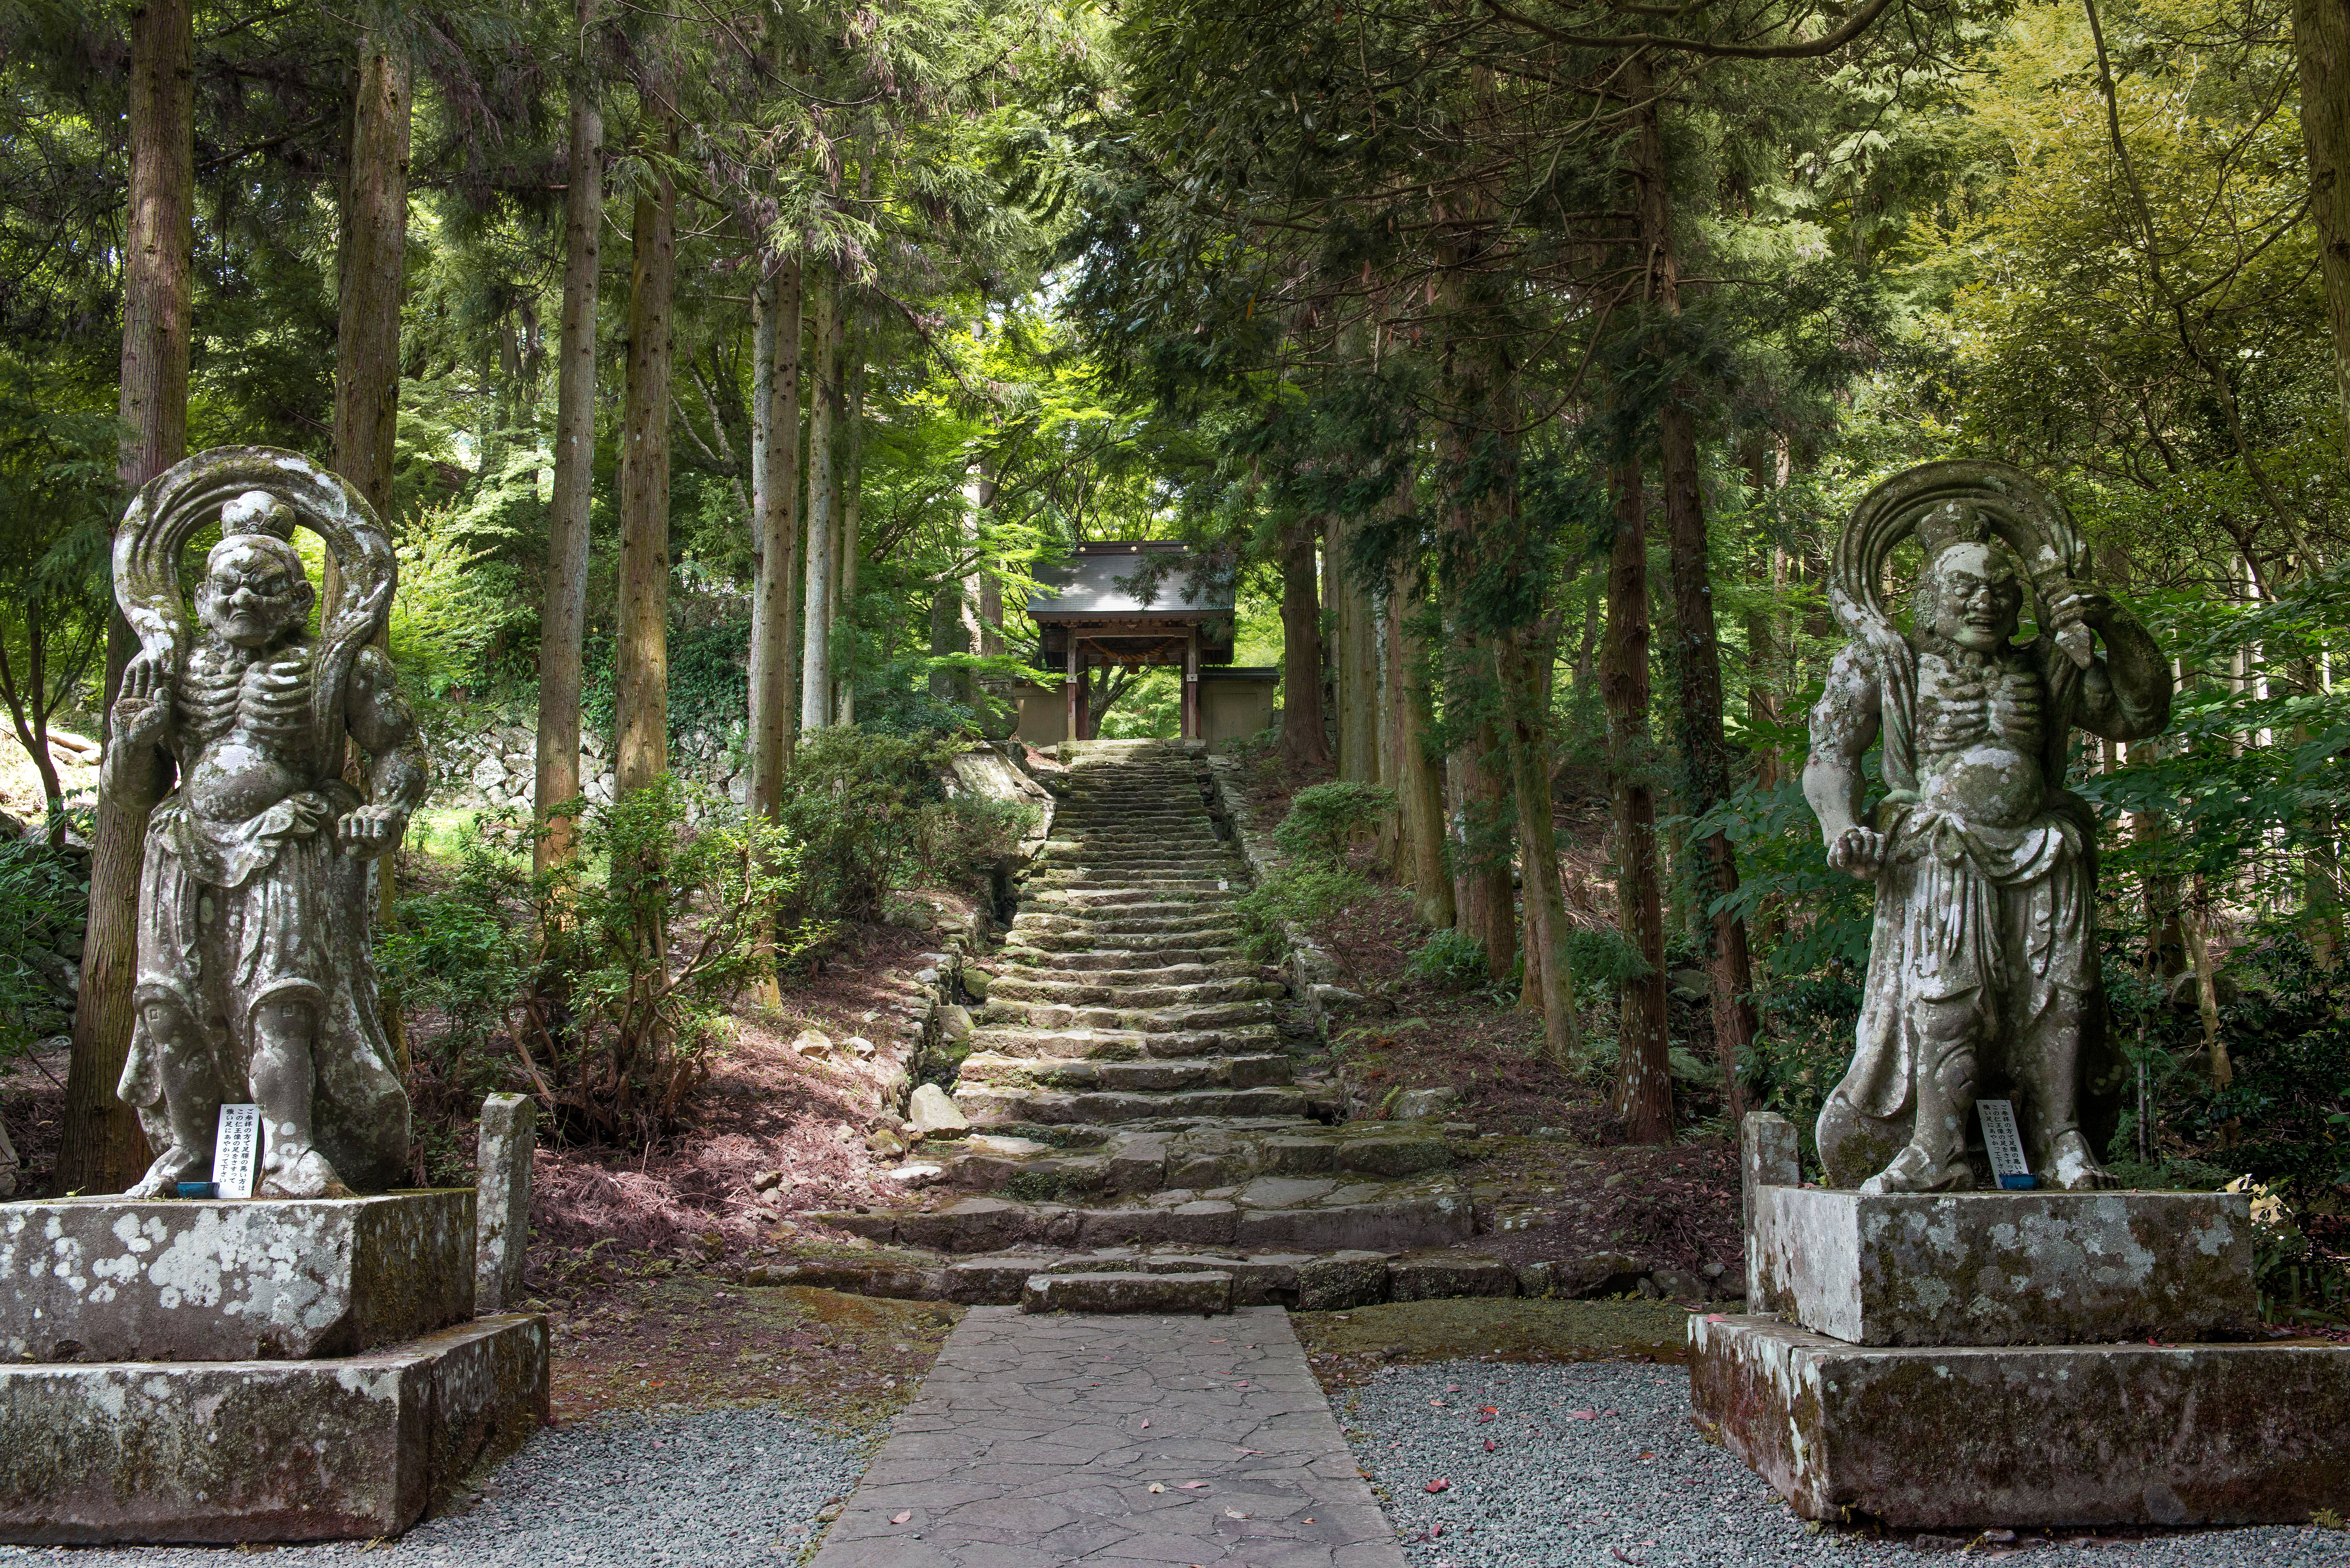 Kunisaki Into A World Of Moss And Stone The Japan Times